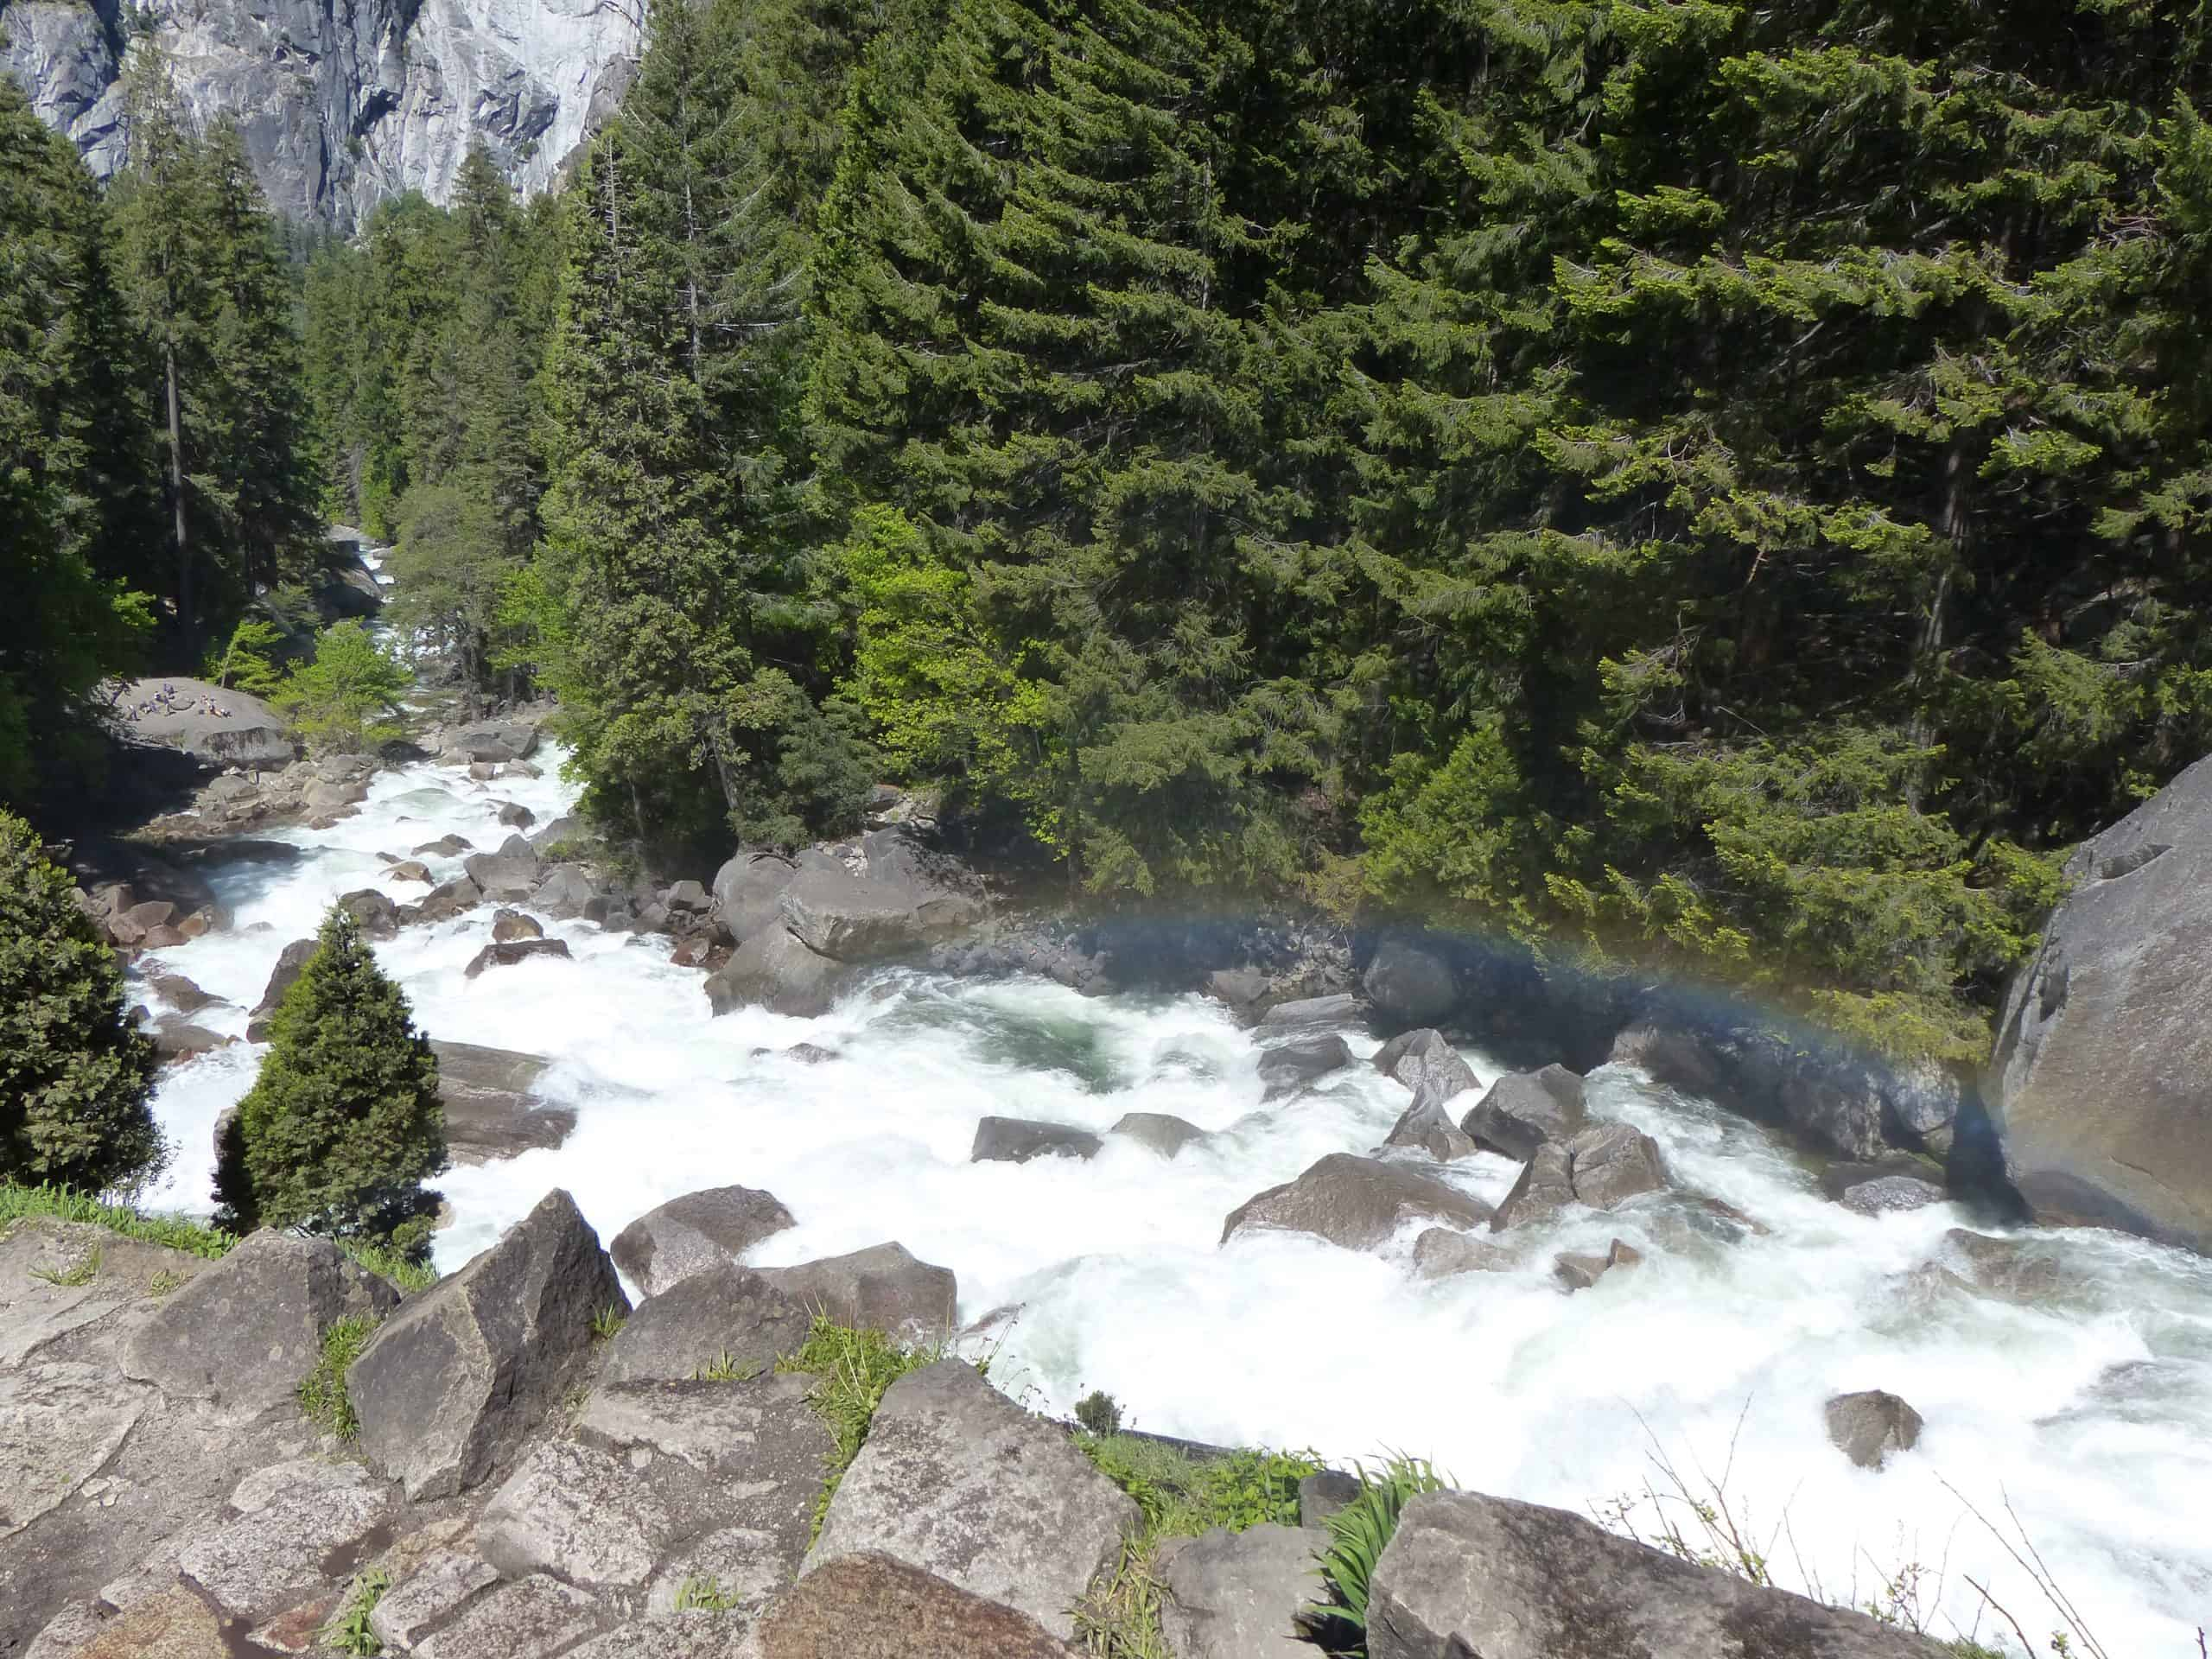 Waterfalls are raging at Yosemite in the spring.